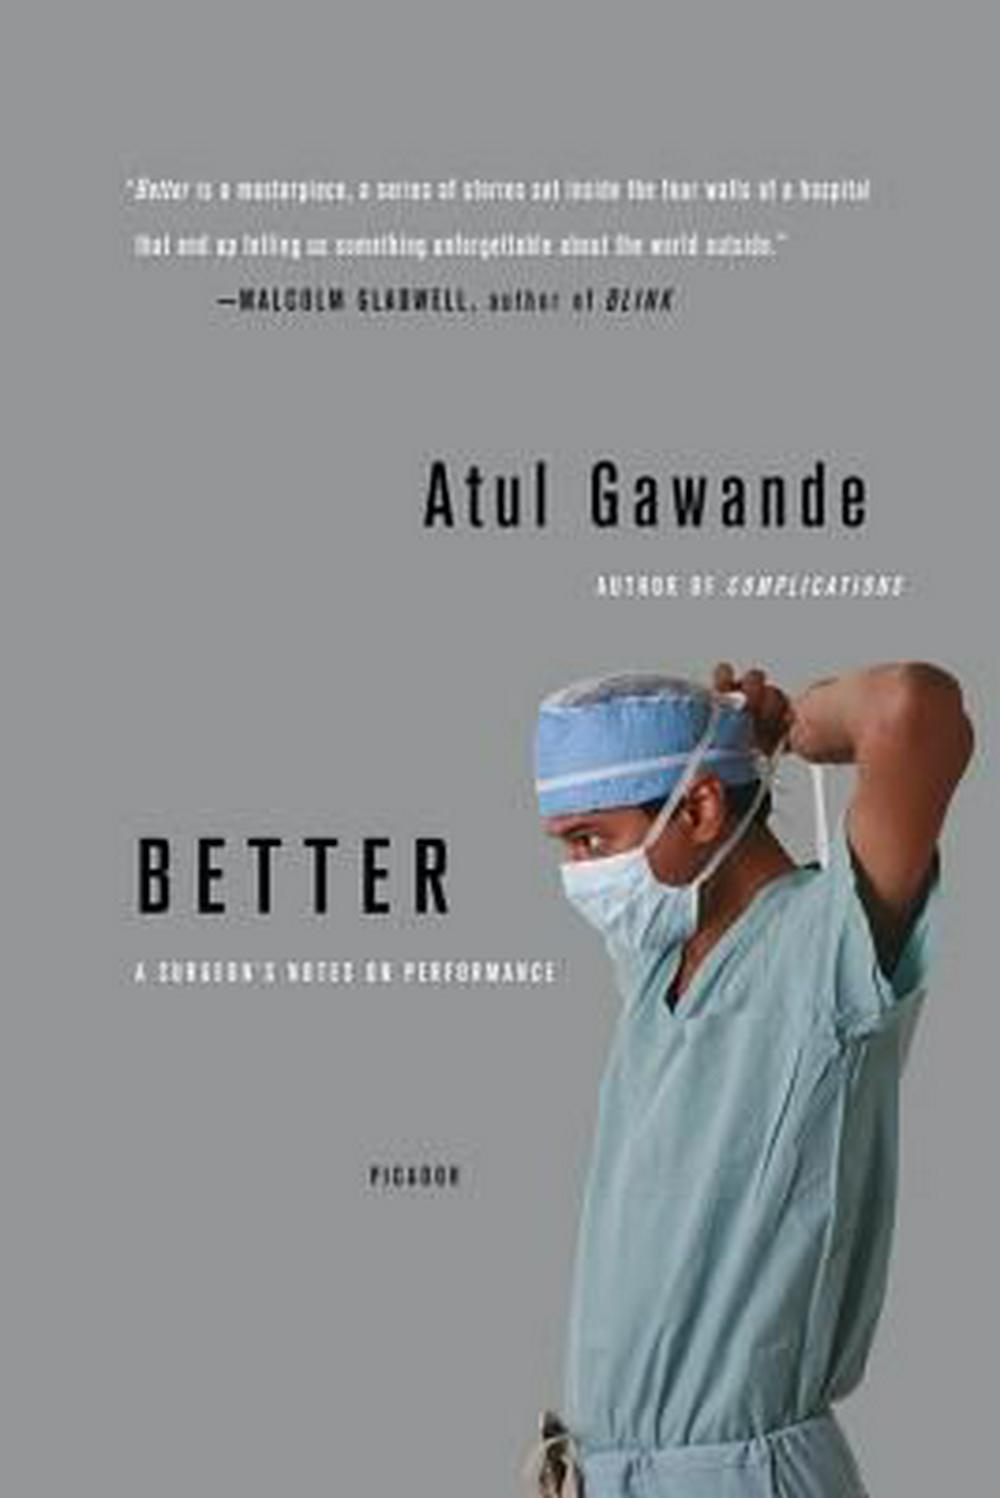 understanding the book better a surgeons notes on performance essay Better: a surgeon's note on performance (reviewed by poornima apte apr 23, 2007) reading dr atul gawande's new book, better , brought me back to a summer many years ago when my husband and i were browsing at a renowned art fair in new england.